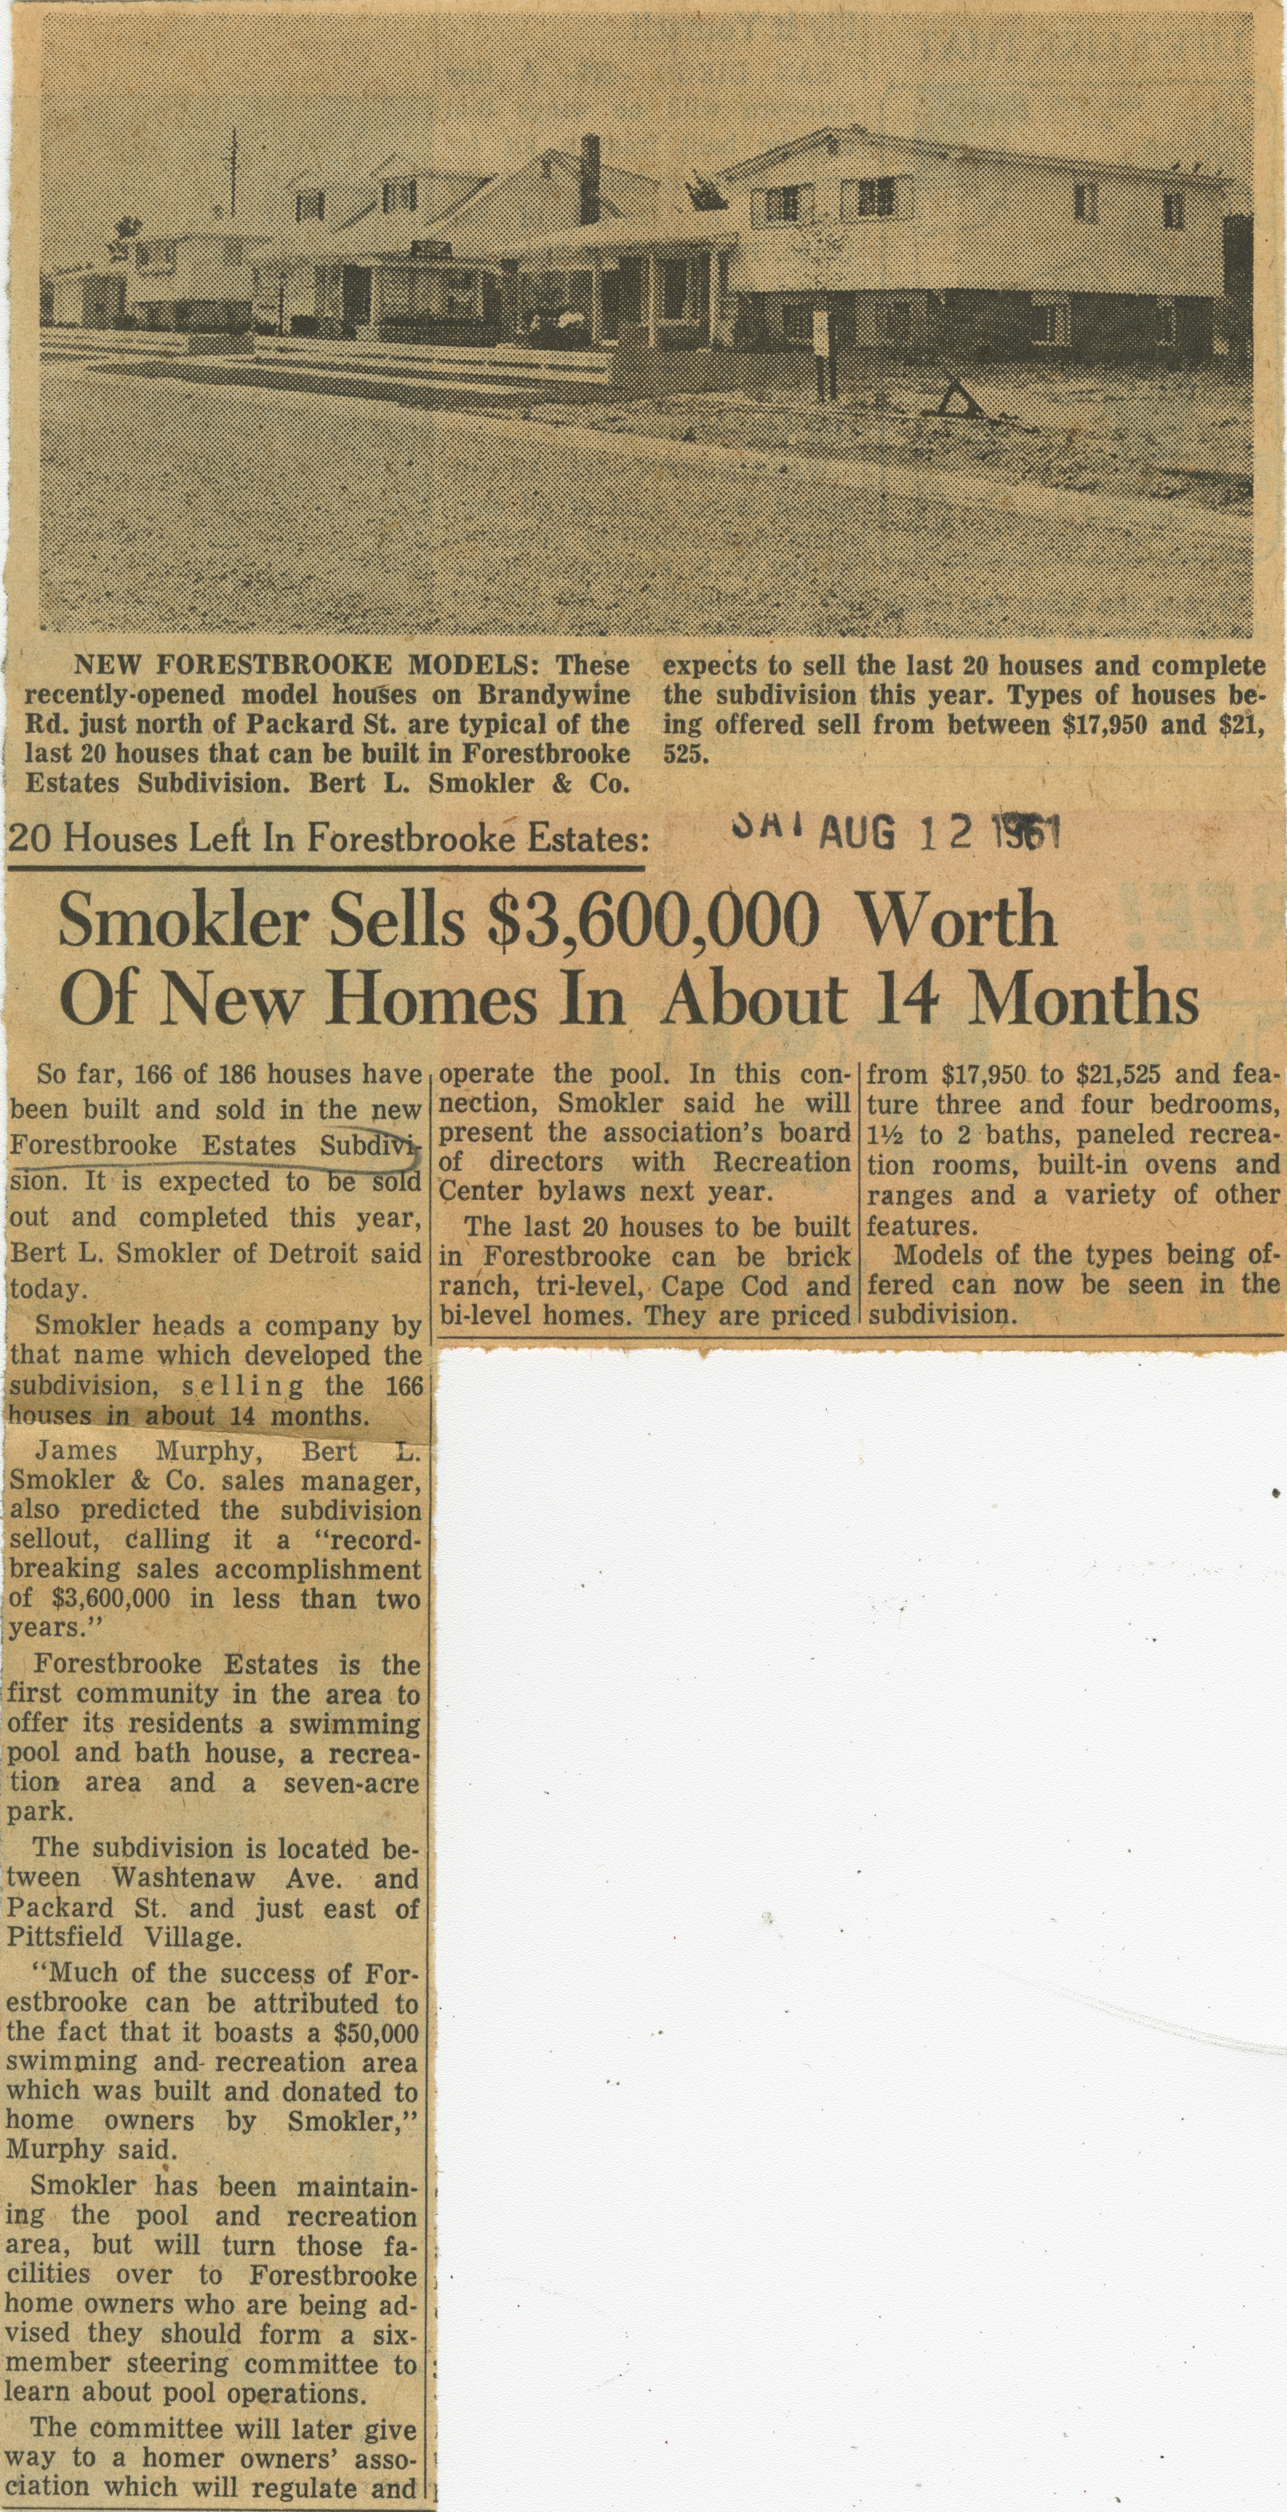 Smokler Sells $3,600,000 Worth Of New Homes In About 14 Months image